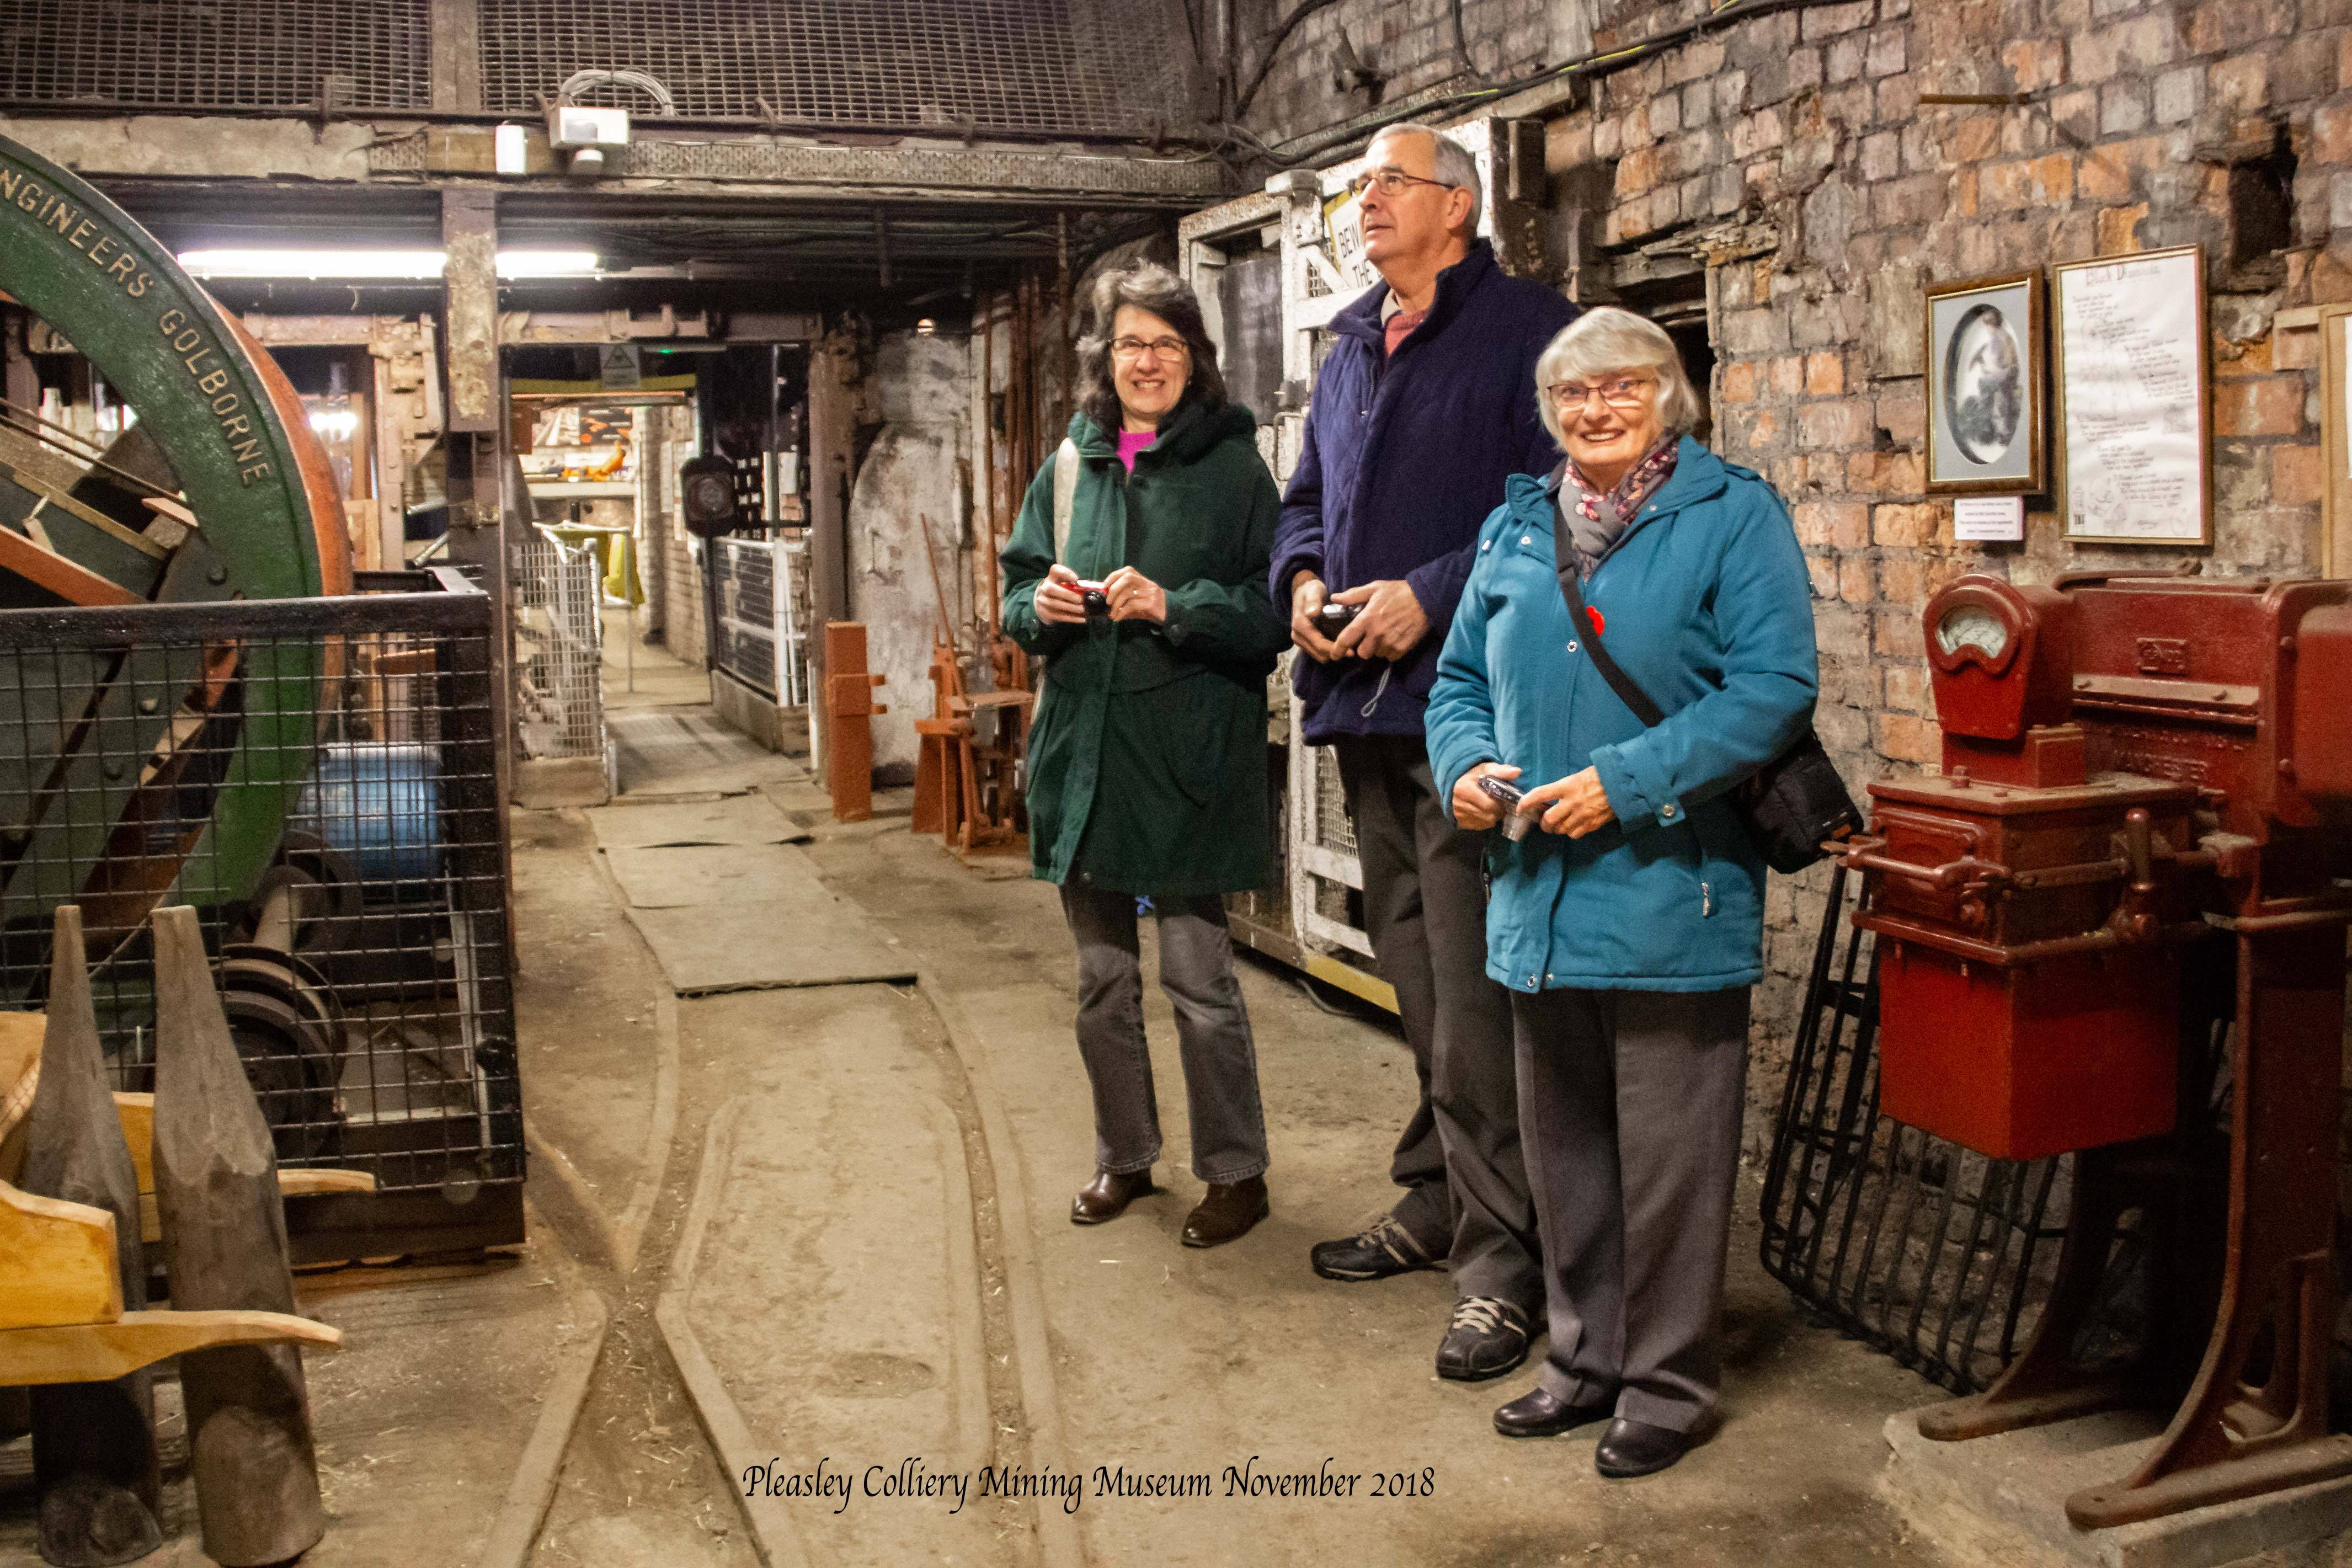 Members at Pleasley Colliery Mining Muse